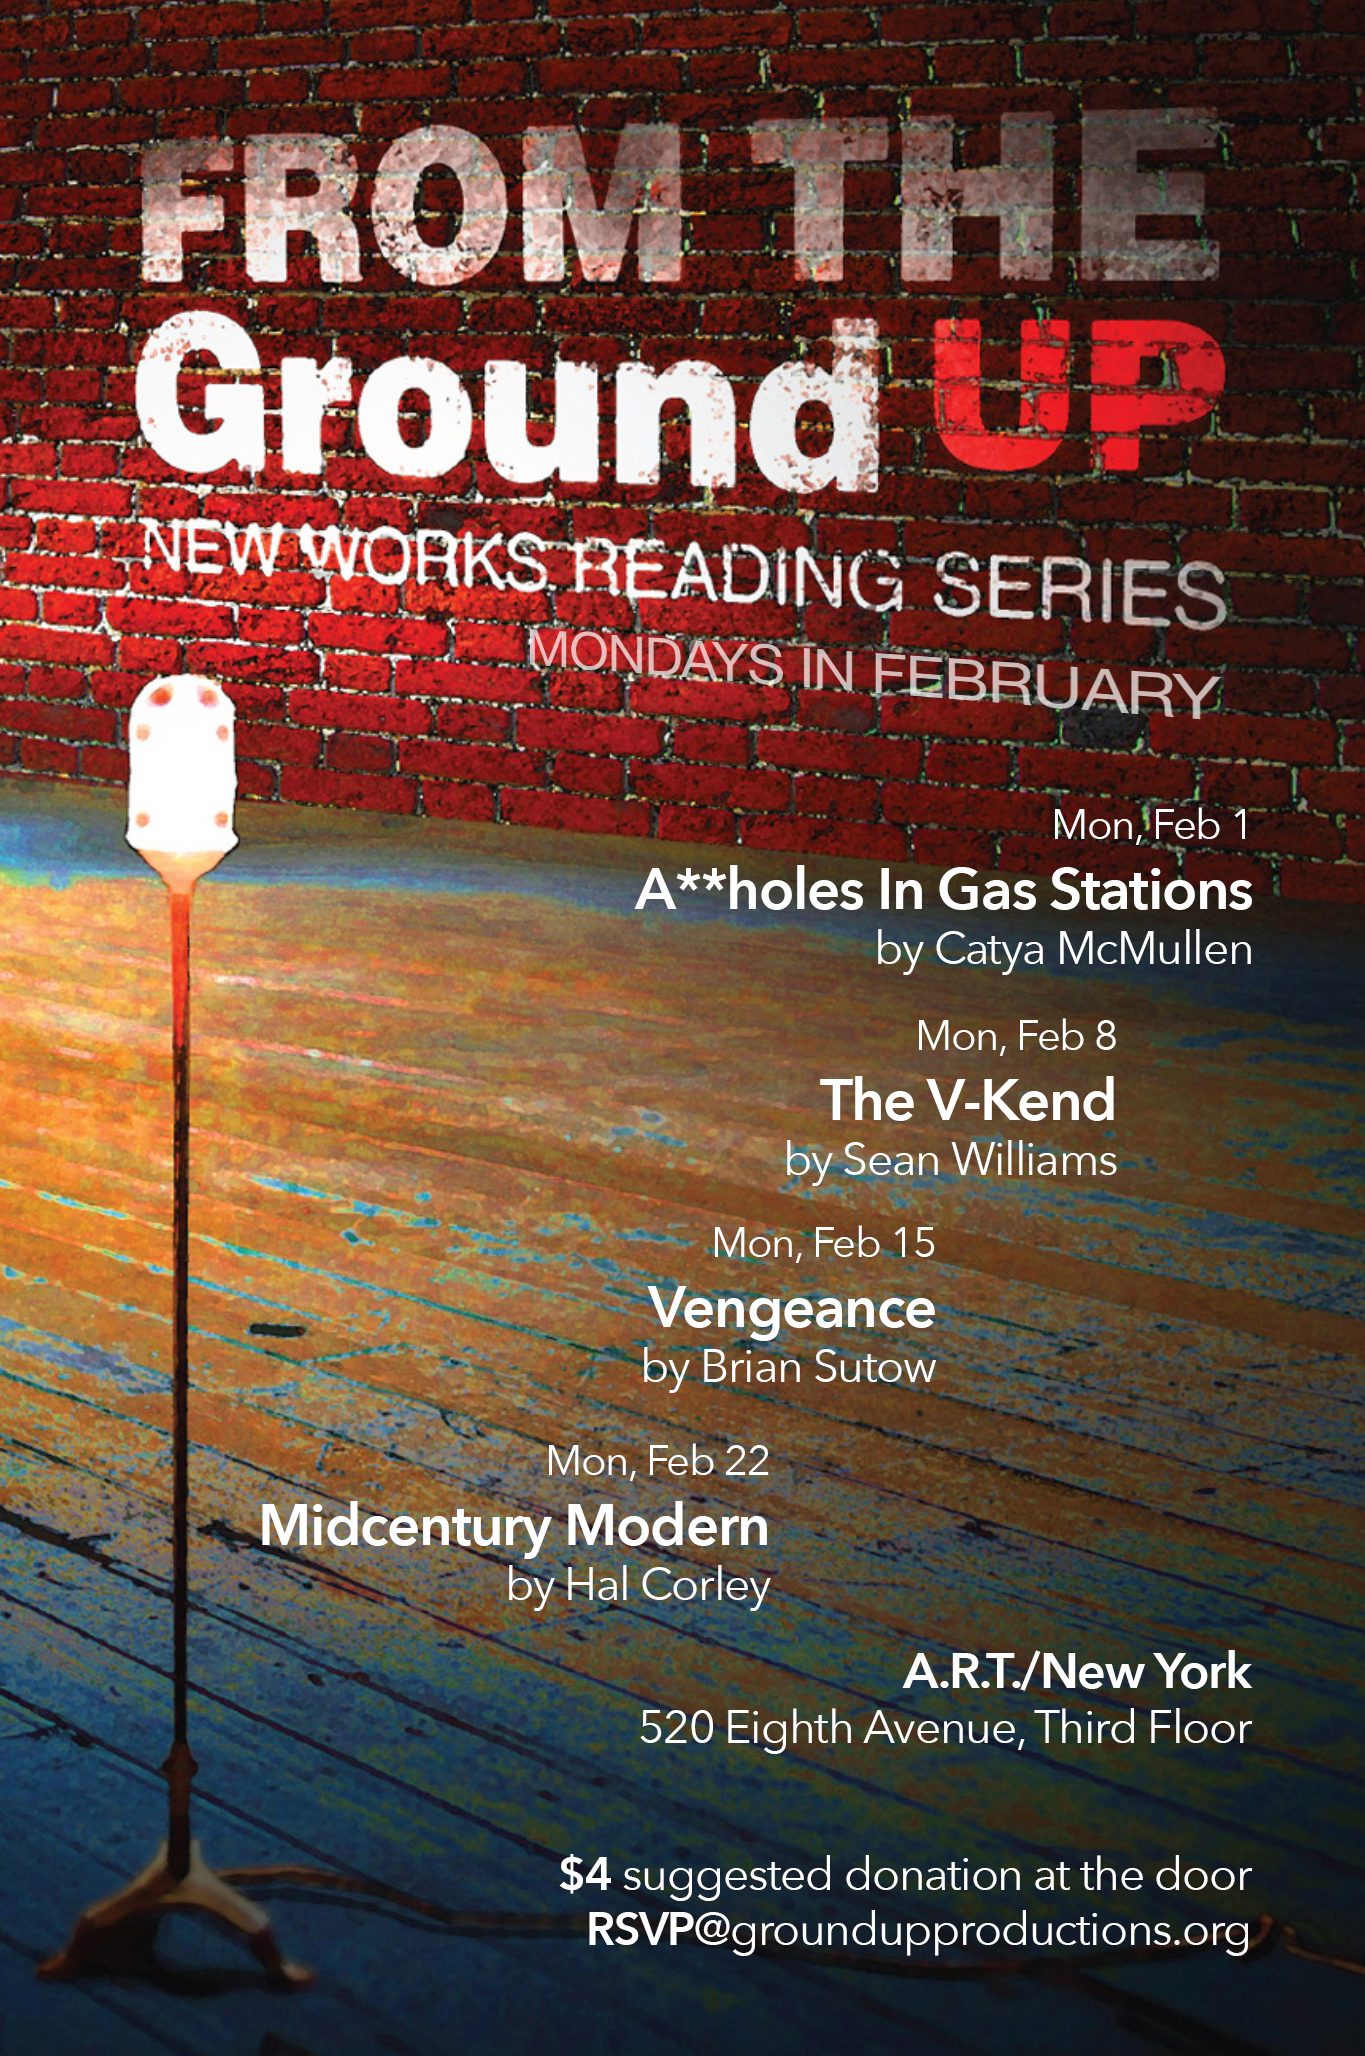 New Works Reading Series